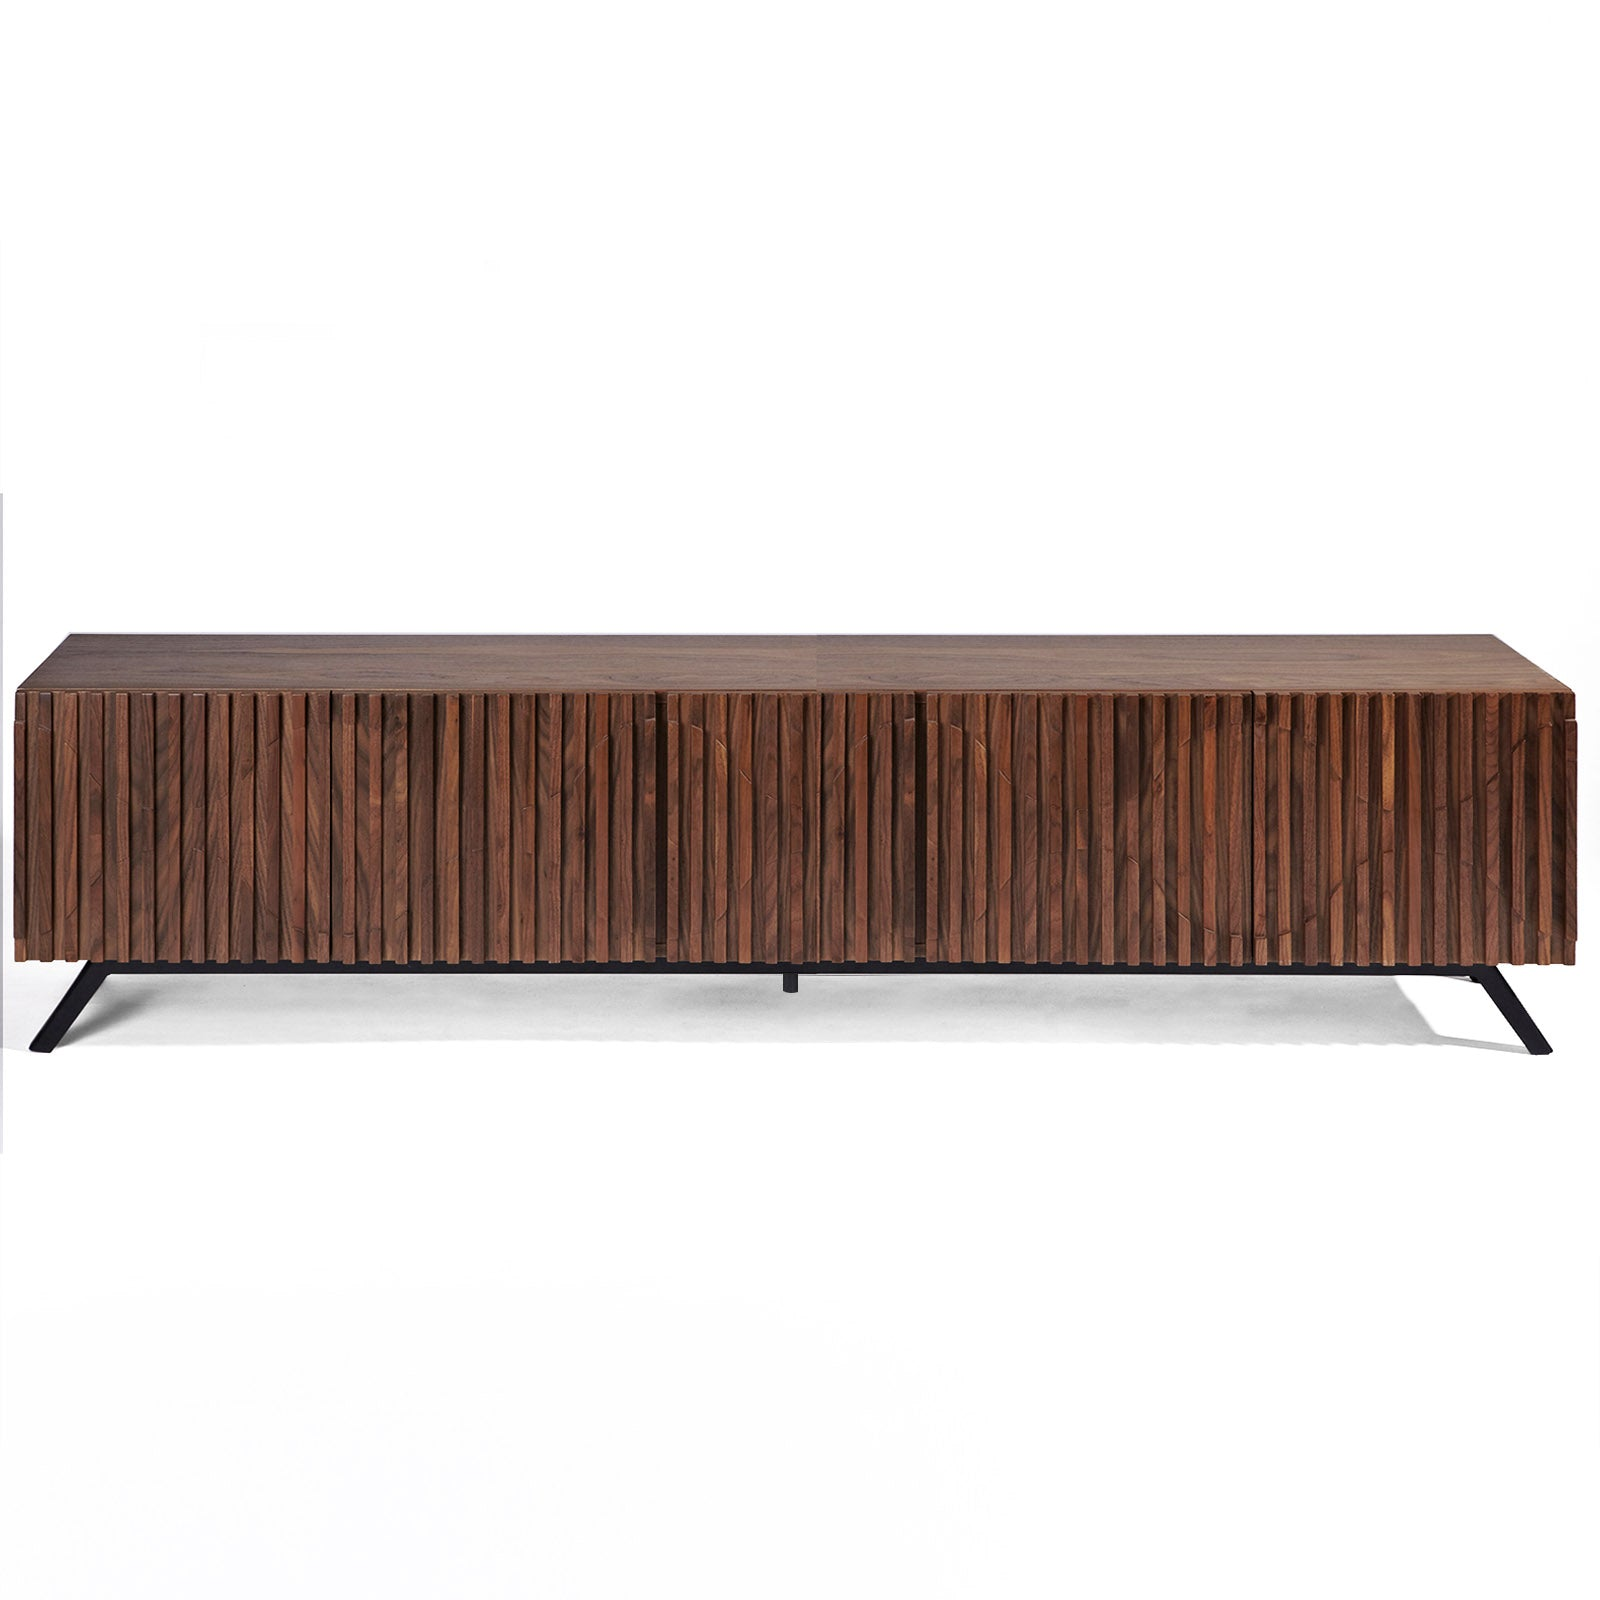 Pre-Order 60 days delivery  Haderslev 242 cm TV unit  BSG15131B